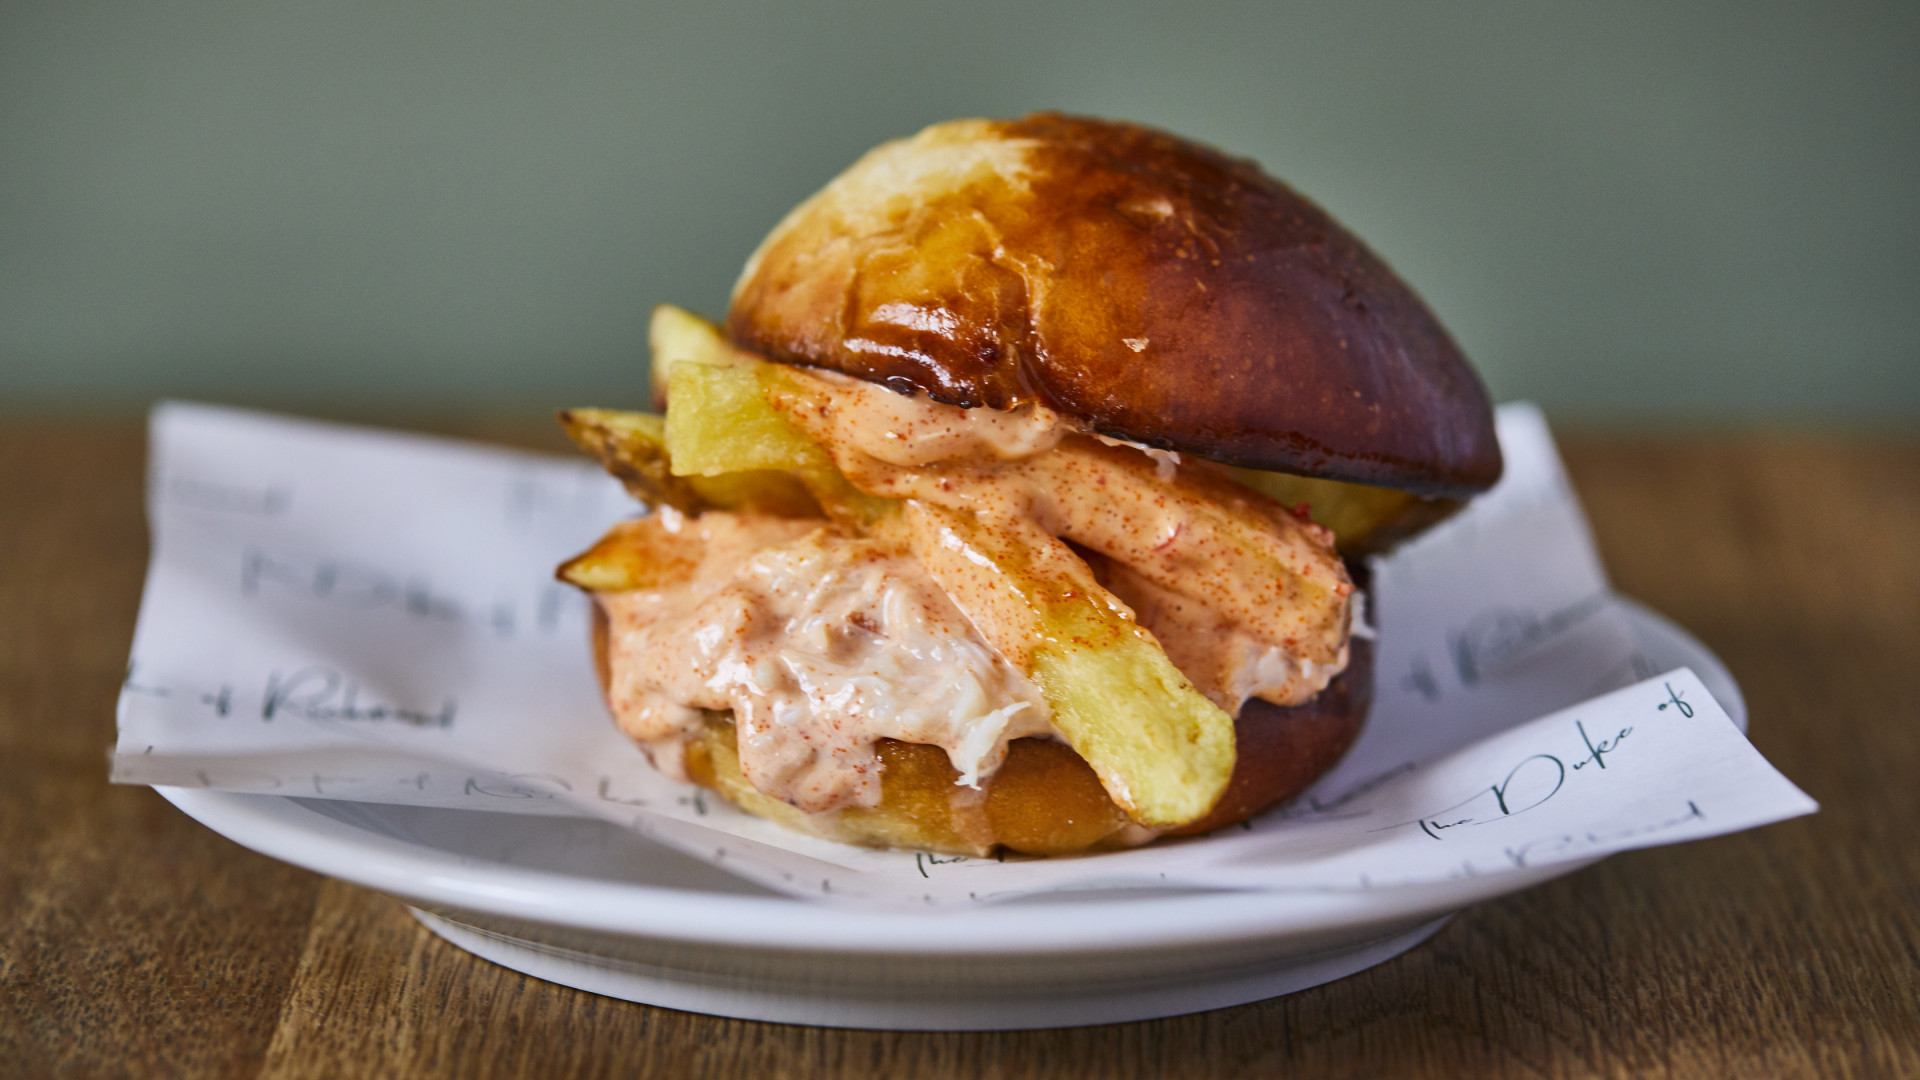 The crab butty from the bar menu at The Duke of Richmond in Hackney